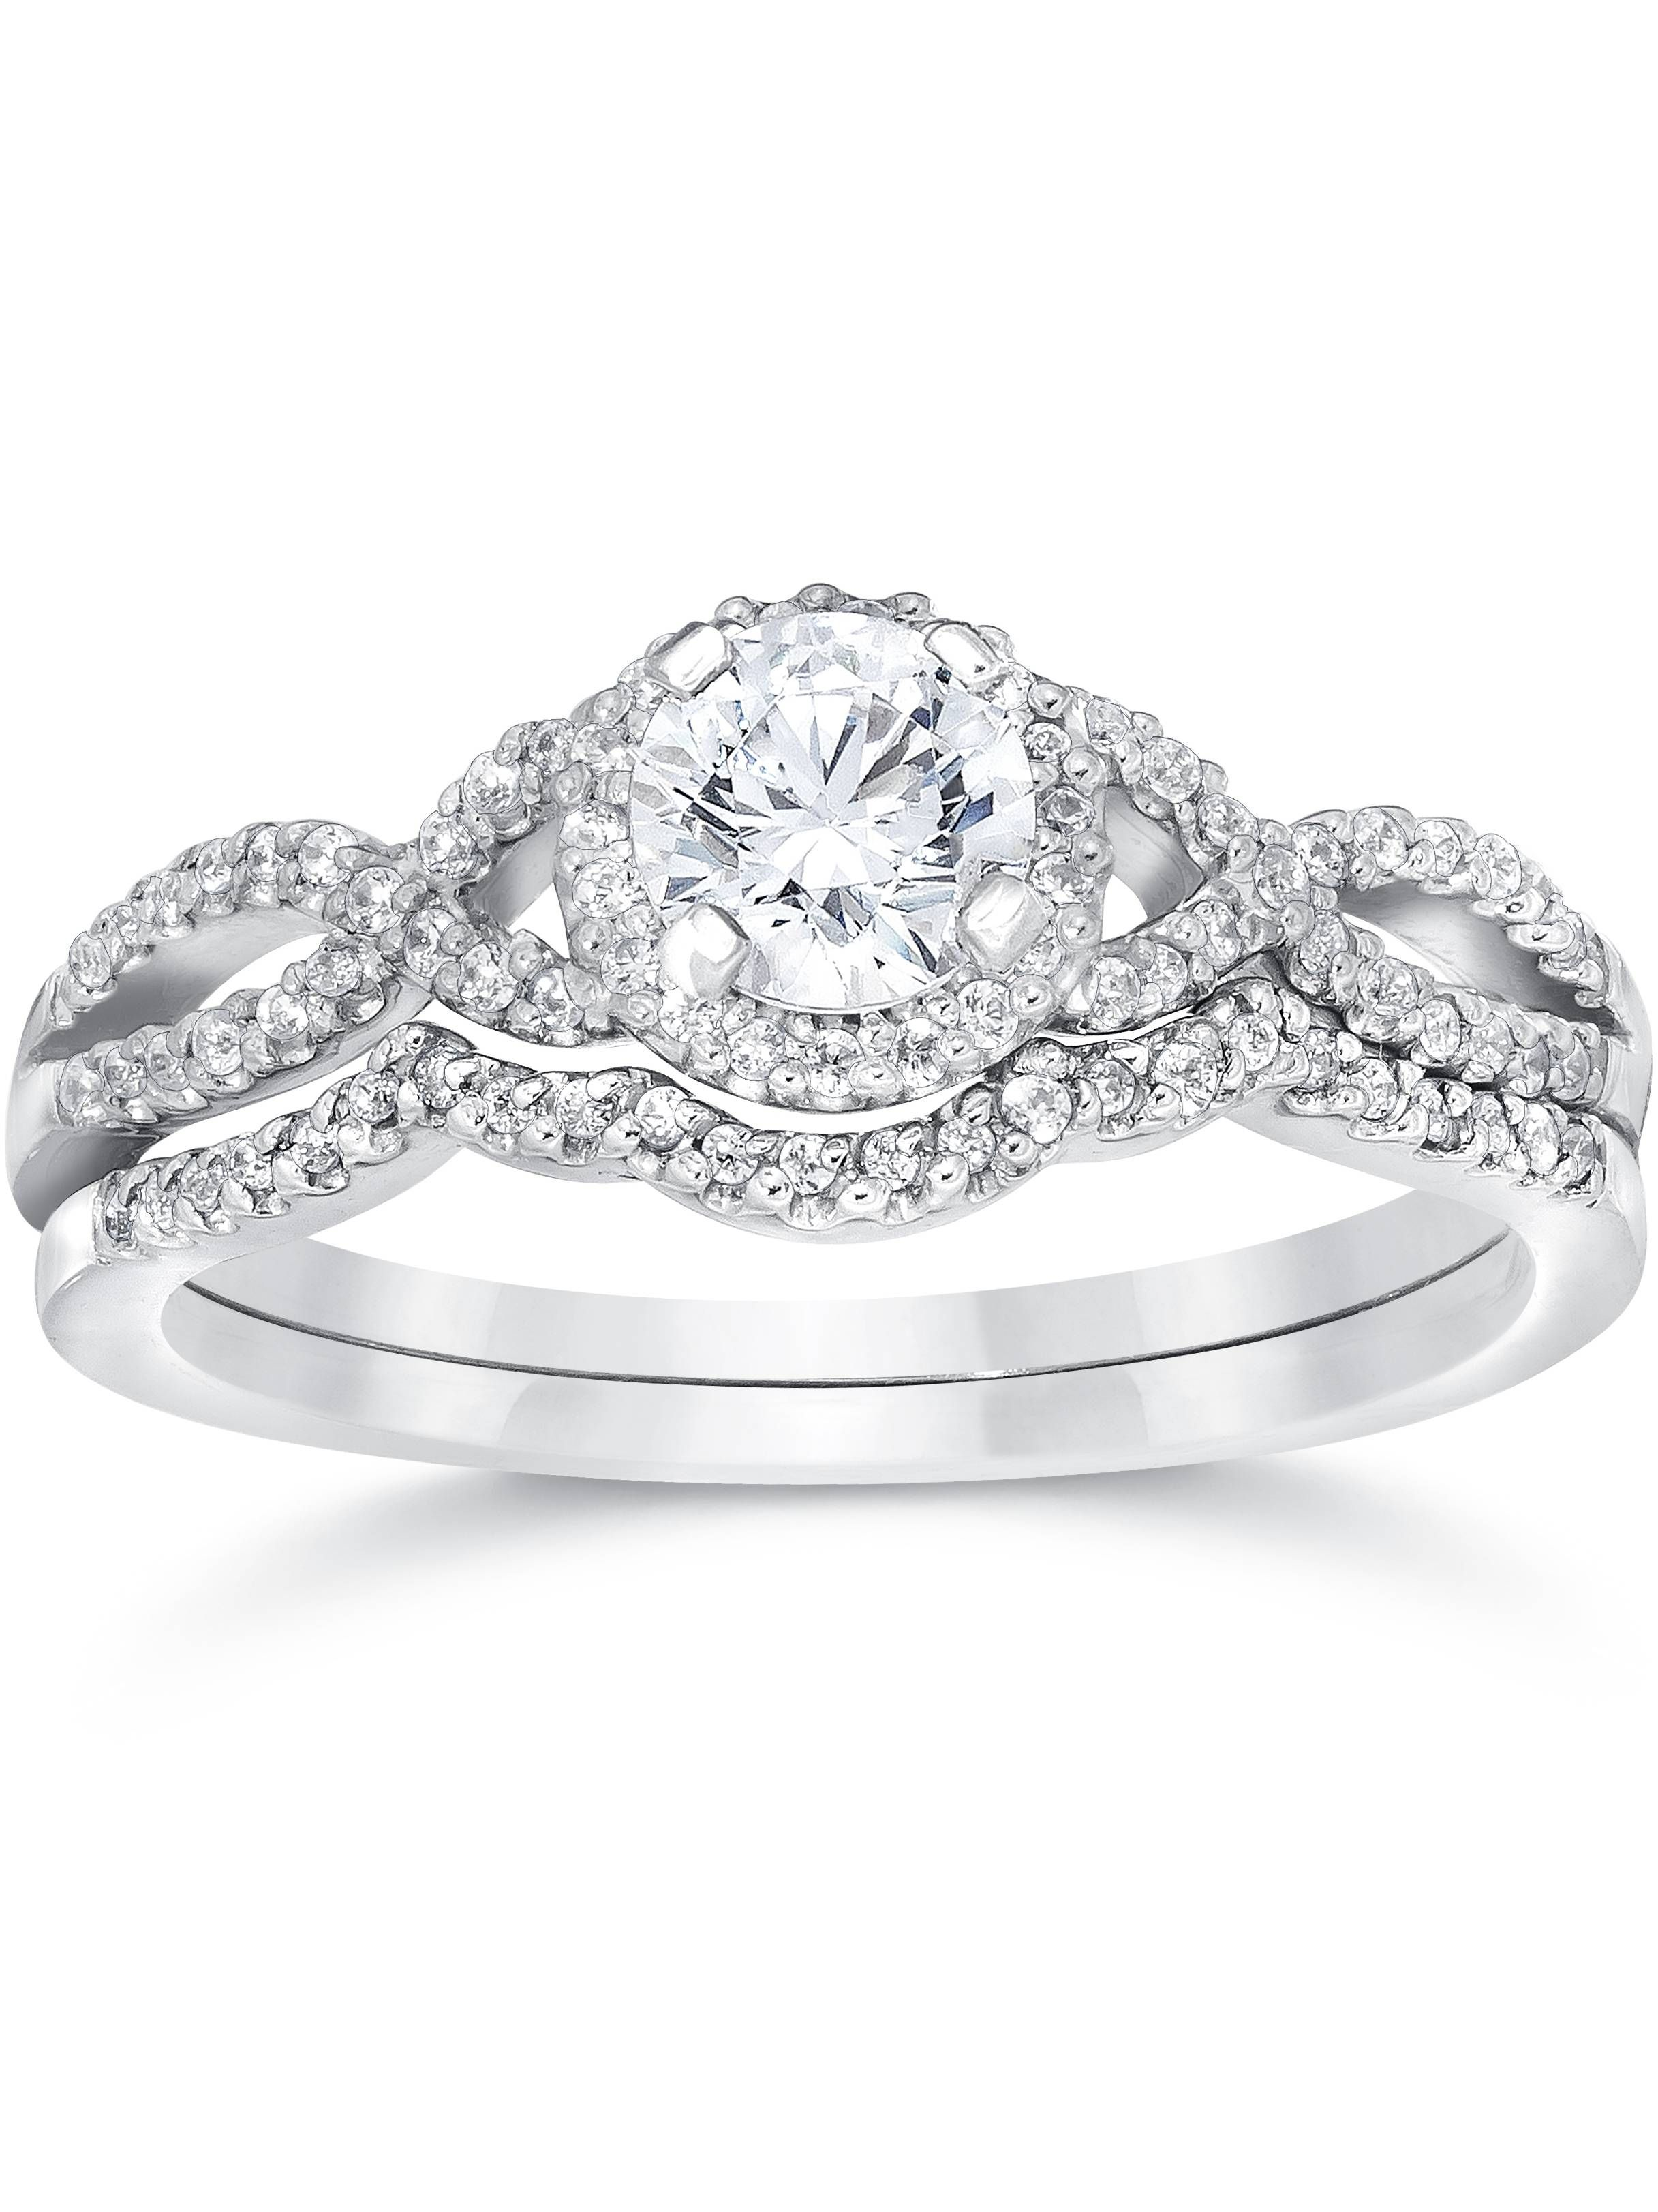 Pin By Breanna Armstrong On Dream Wedding In 2020 Wedding Ring Sets Engagement Rings Bridal Sets Wedding Ring Trio Sets